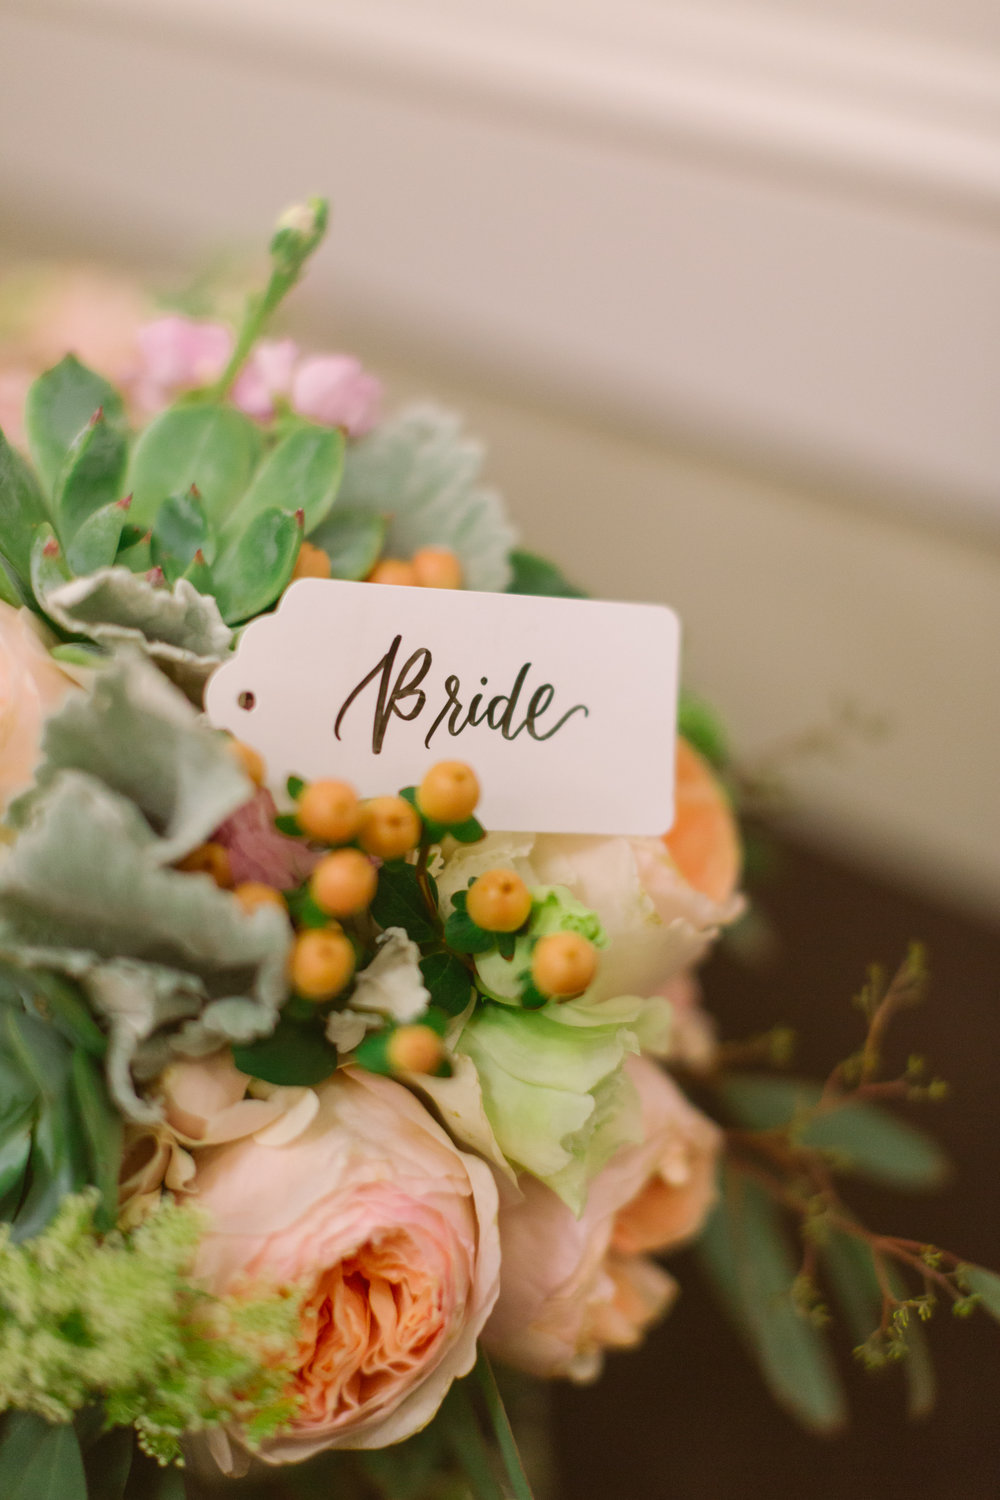 Bridal wedding bouquet for San Diego, California outdoor wedding planned by Exhale Events. See all the beautiful details at exhale-events.com!